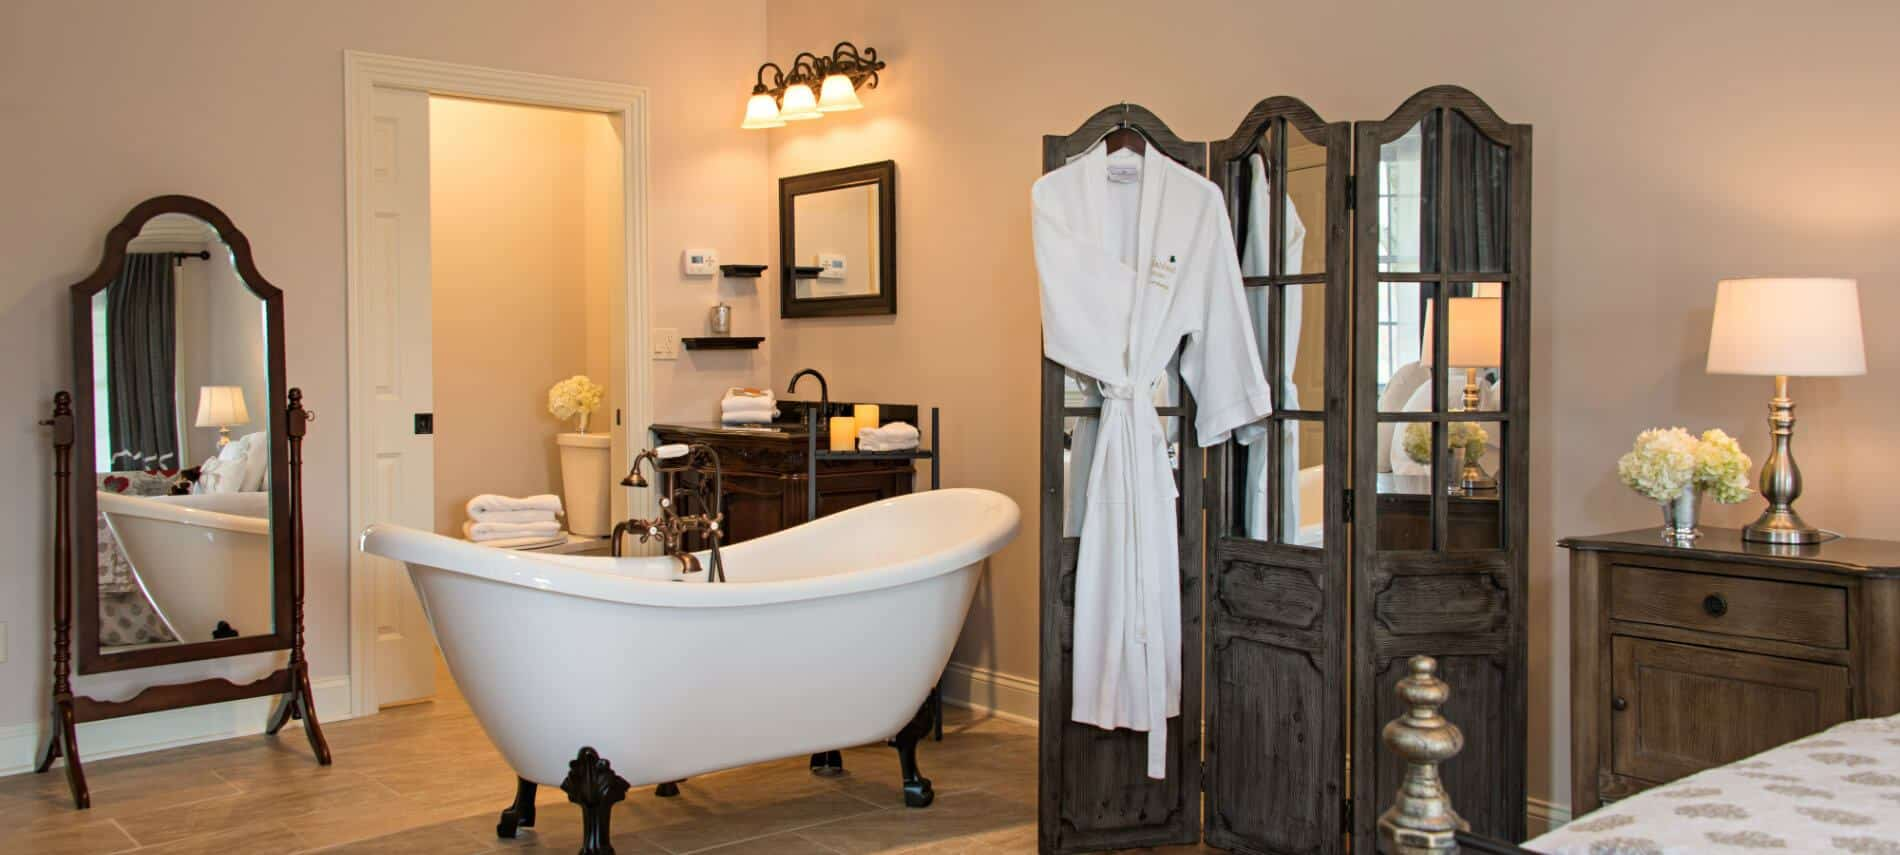 Ensuite within guestroom features white clawfoot bathtub in center of room with spa amenities within reach